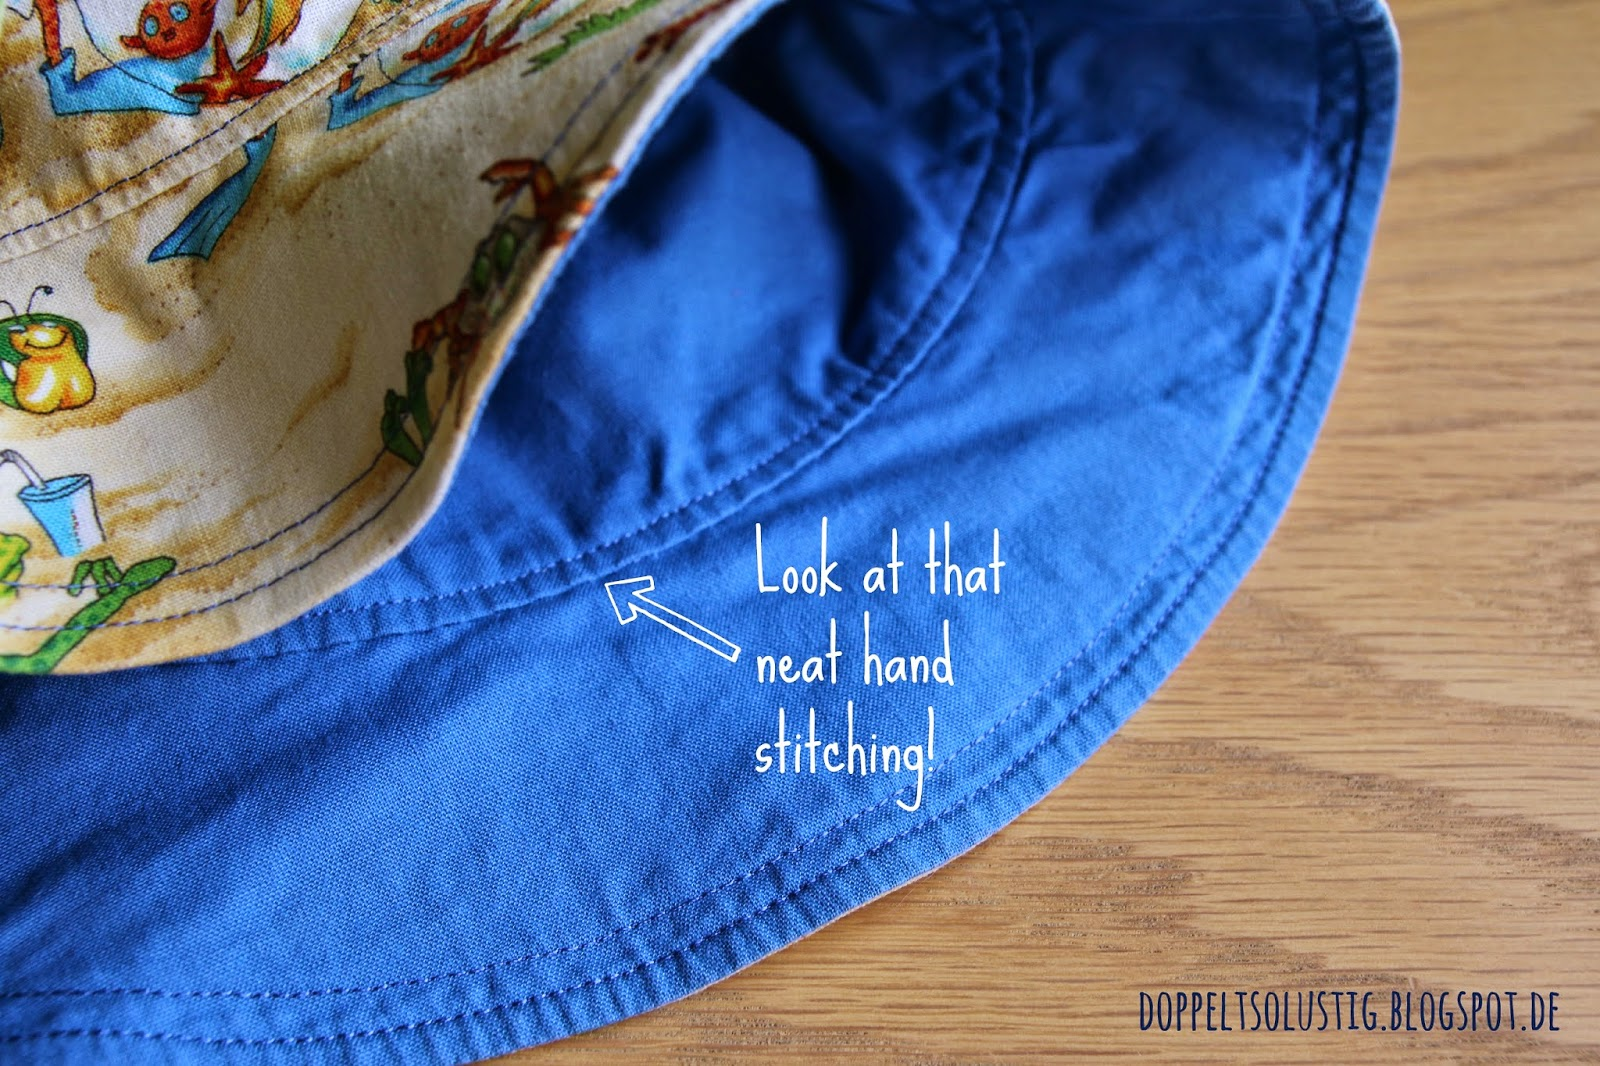 Hand sewn seam | Twice the fun